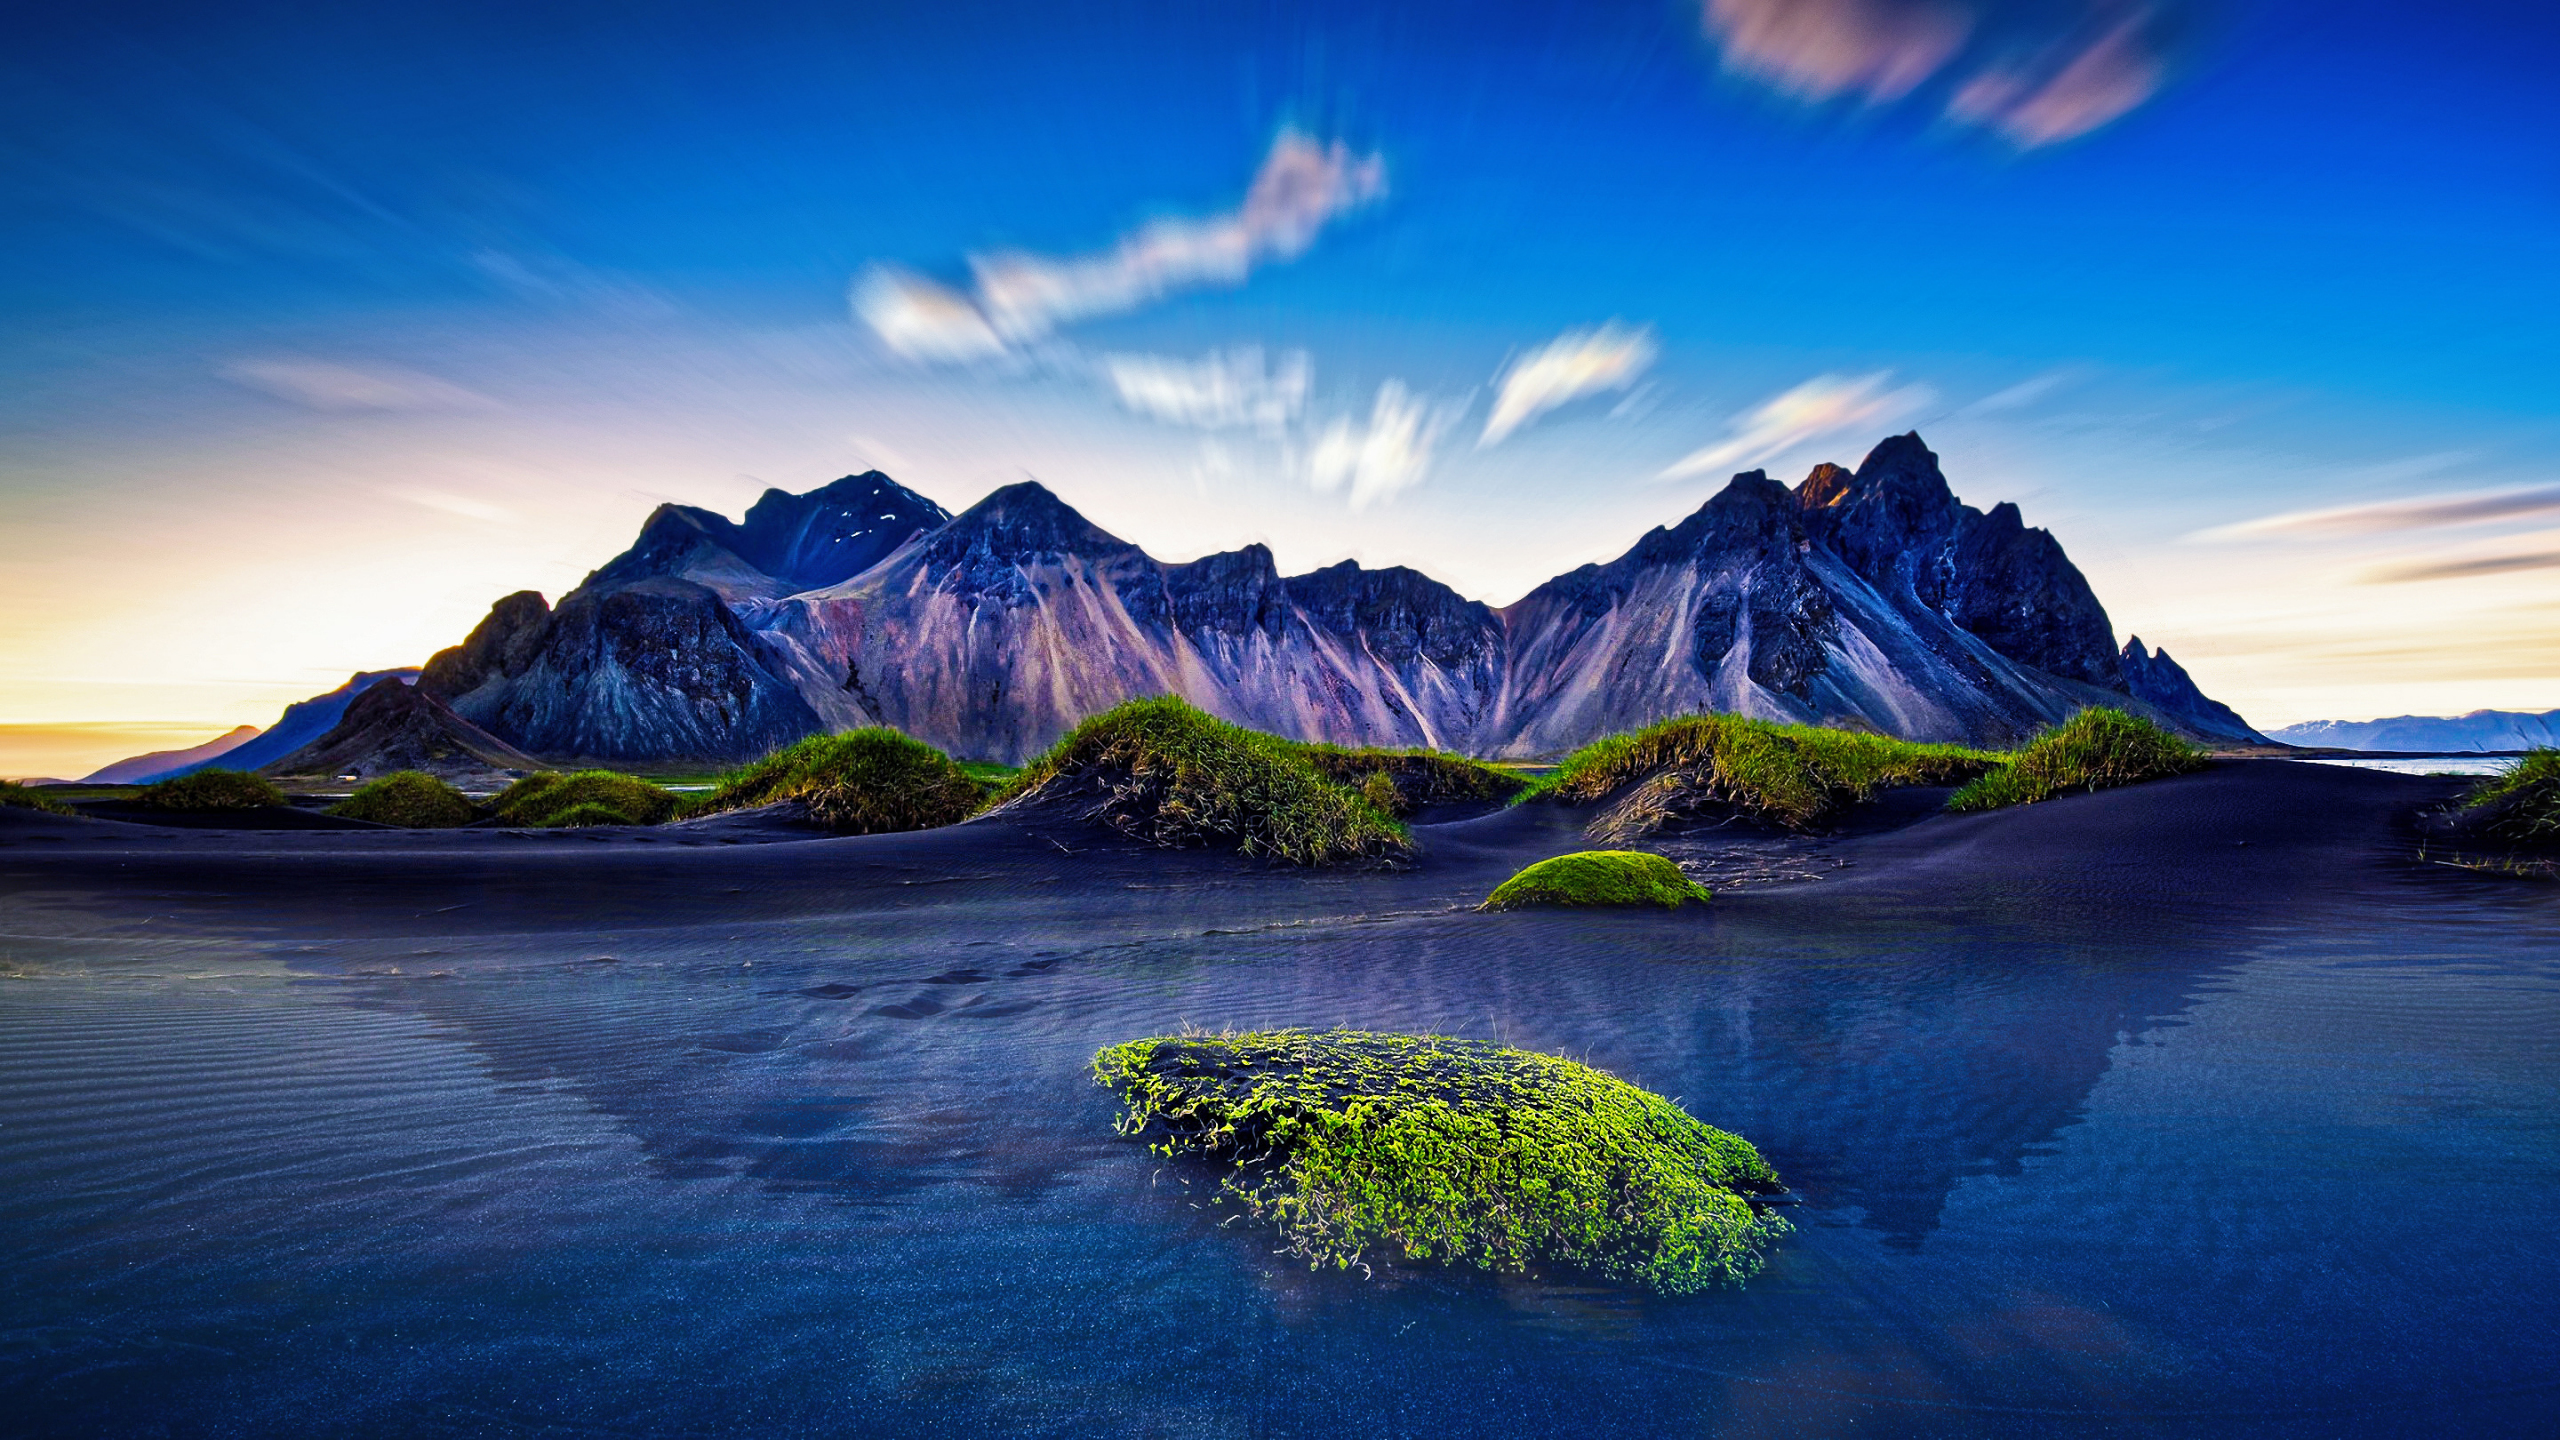 Download 2560x1440 wallpaper mountains, iceland ...